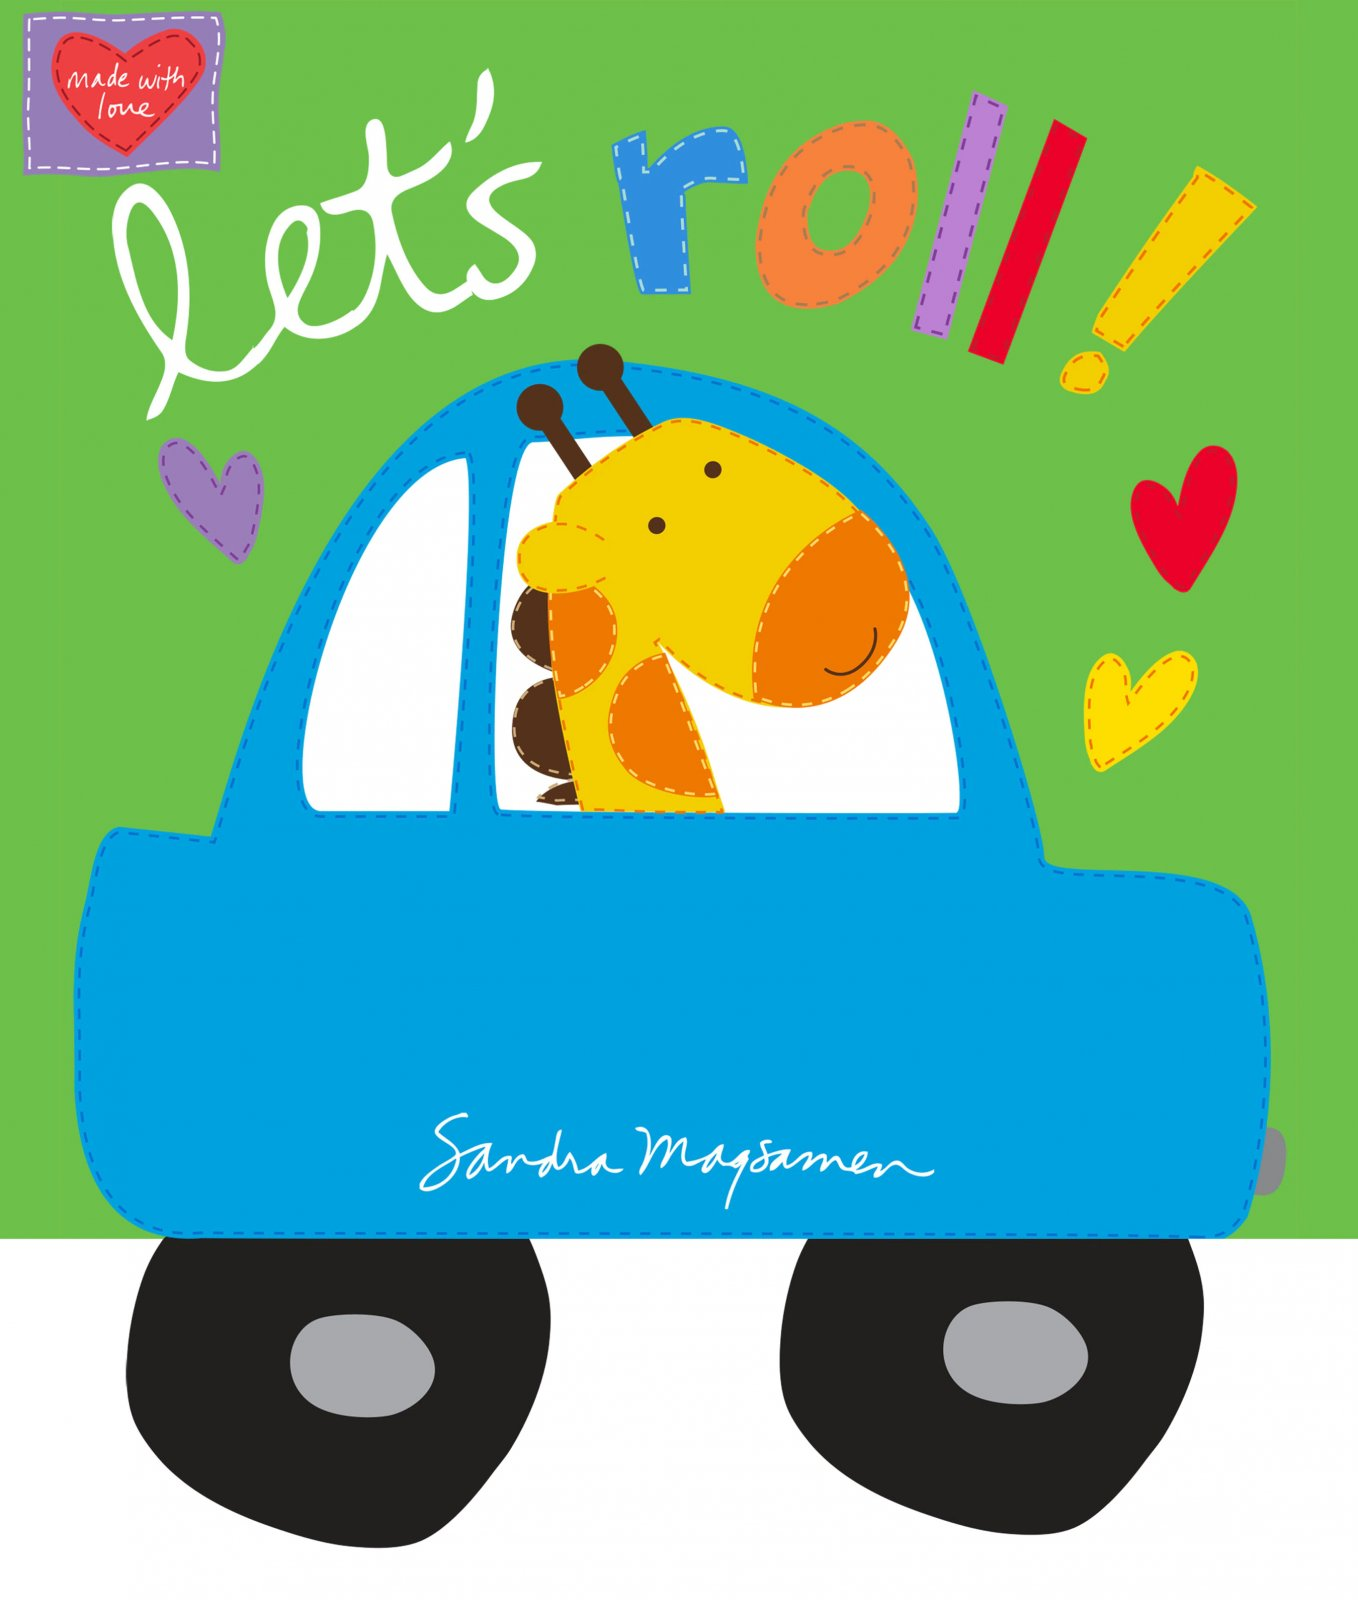 Let's Roll Softbook Panel - White